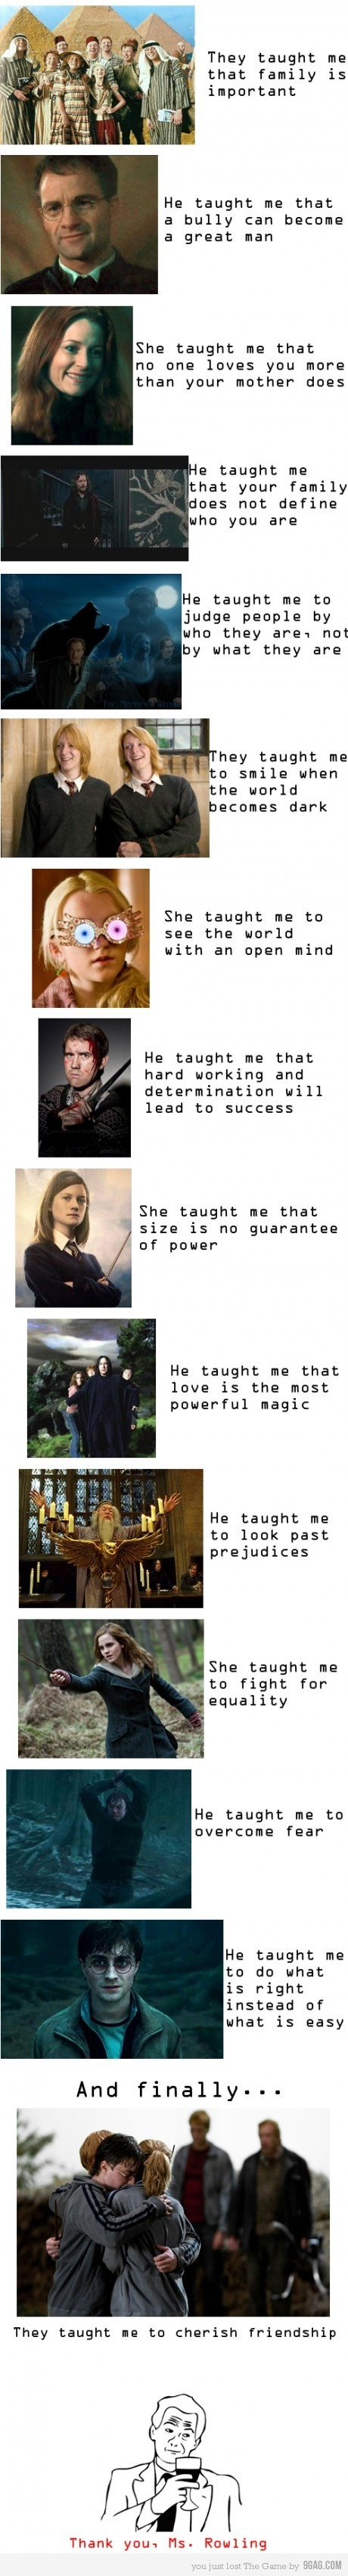 9gag, harry potter, learn, potter, rowling